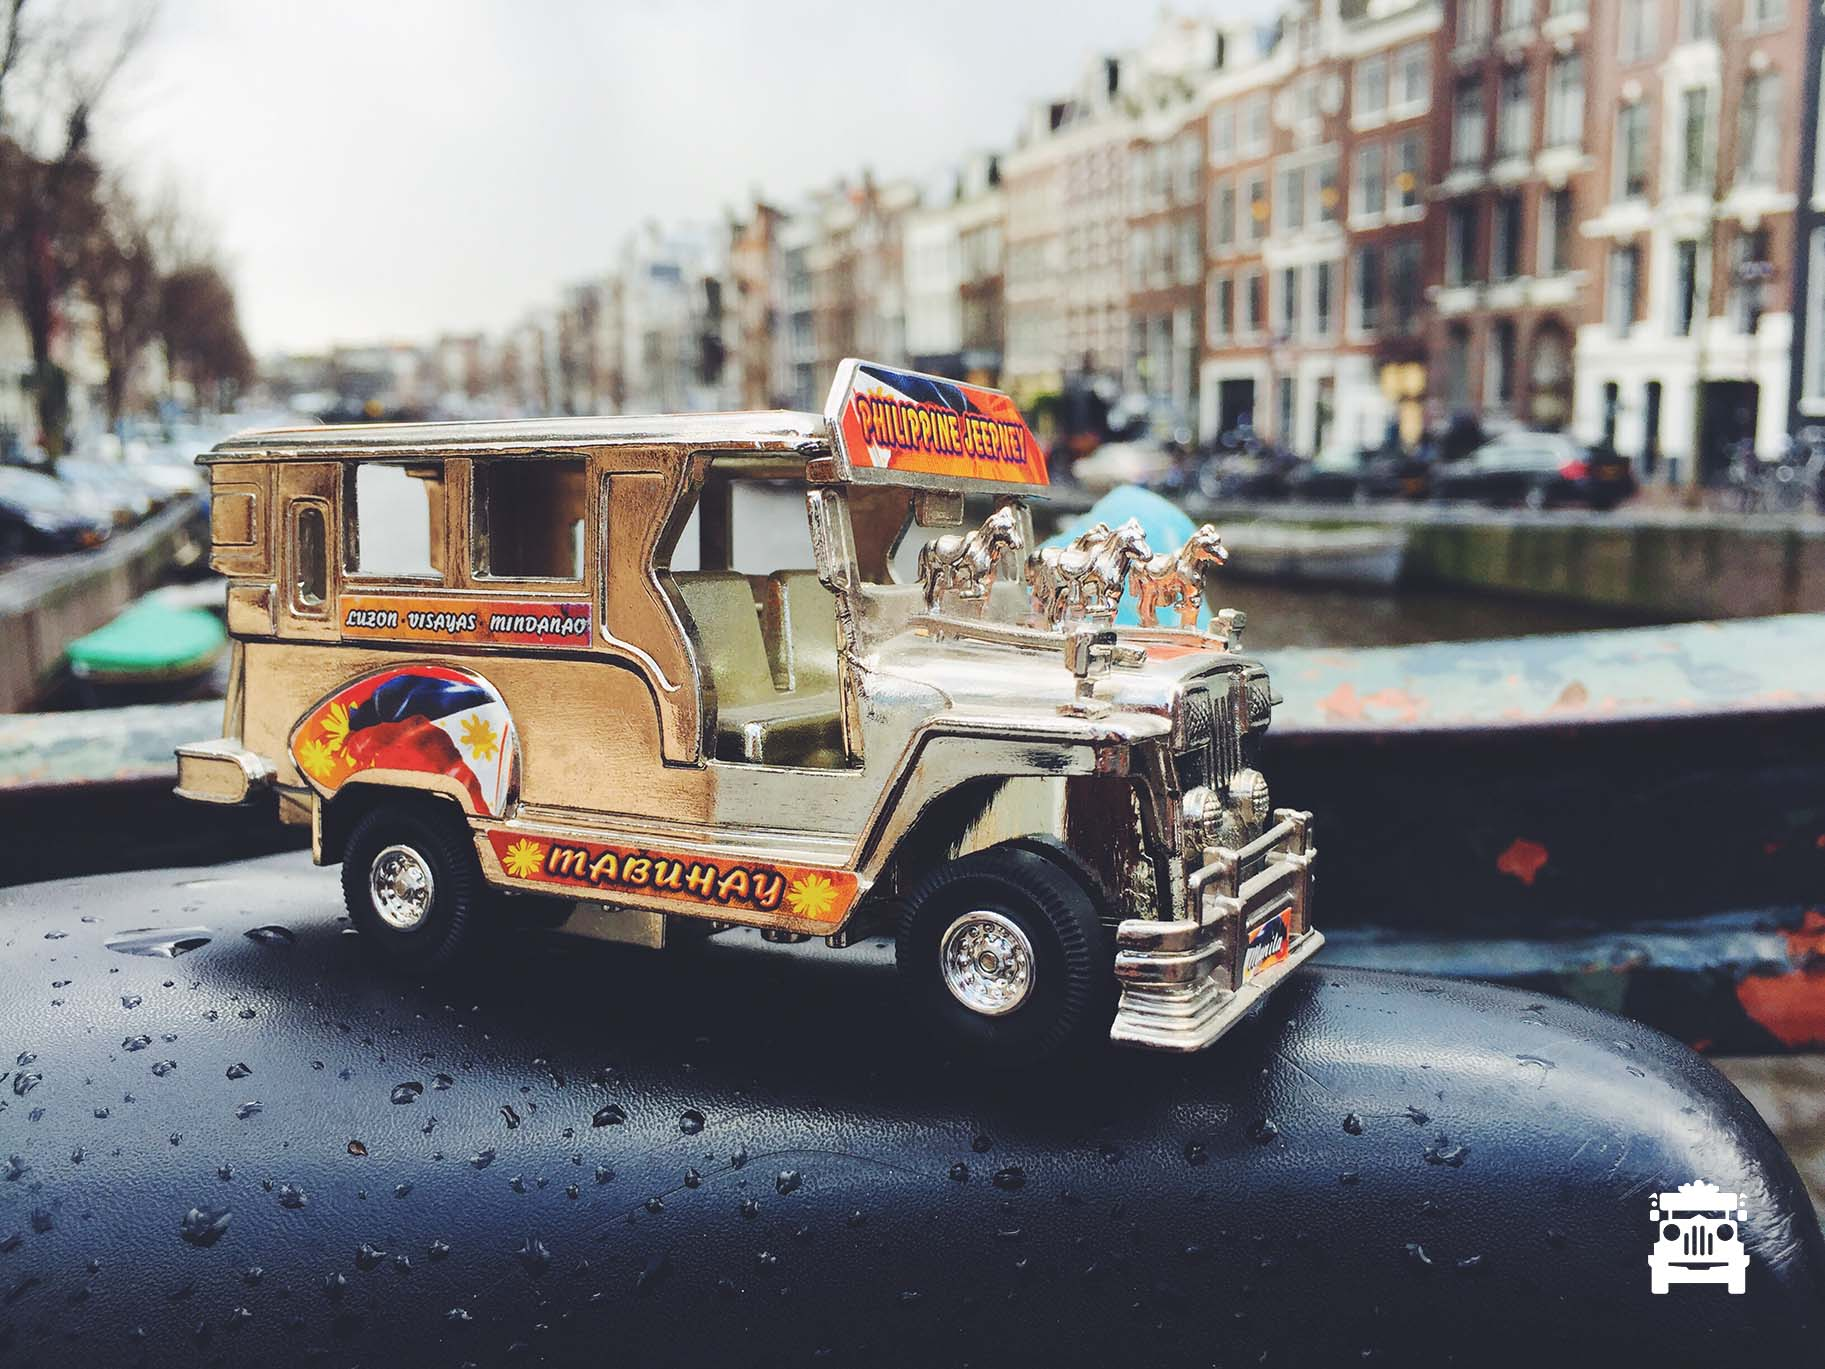 Jeep in Amsterdam